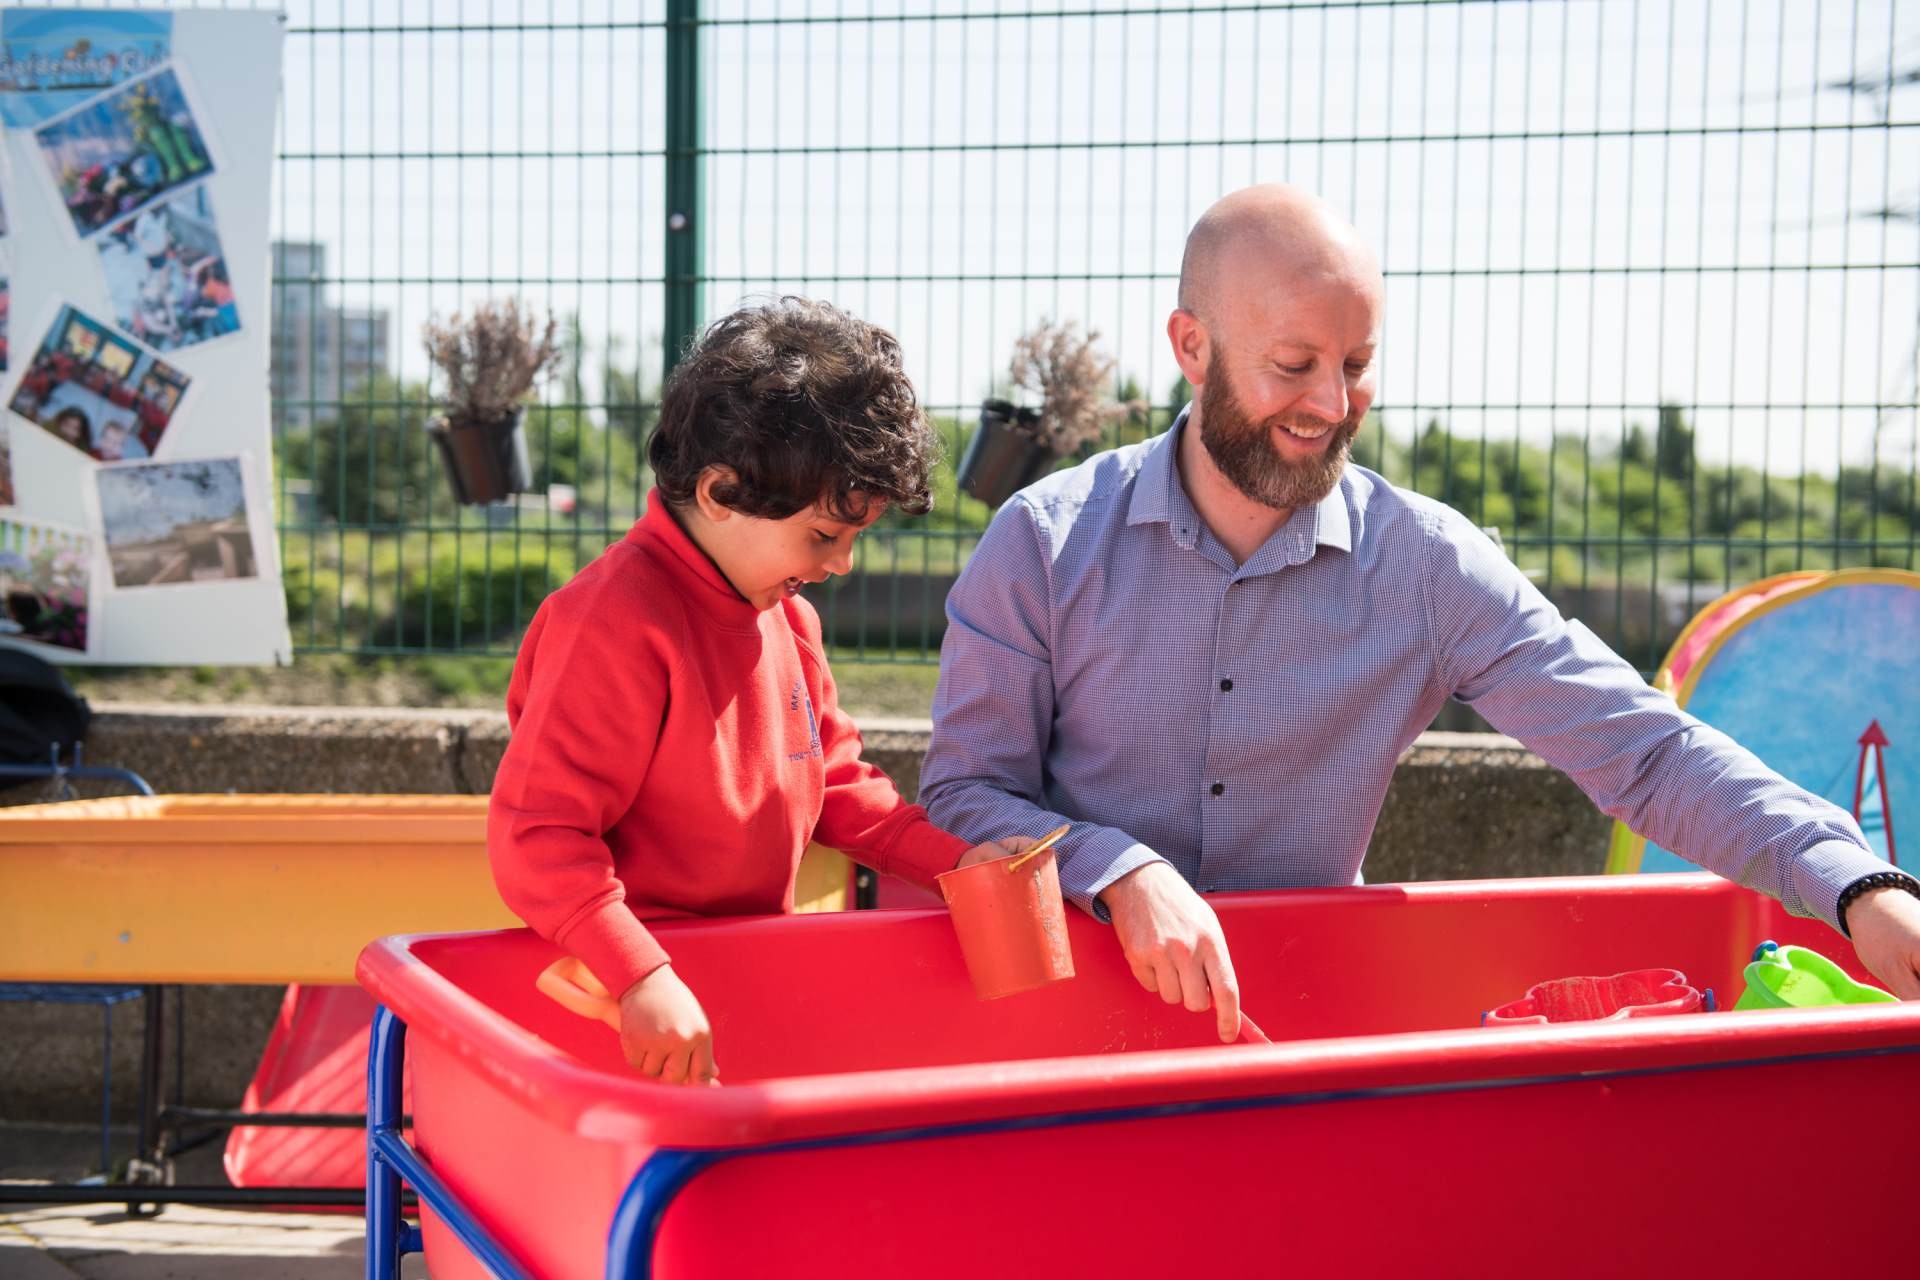 sand play eyfs setting male teacher and child